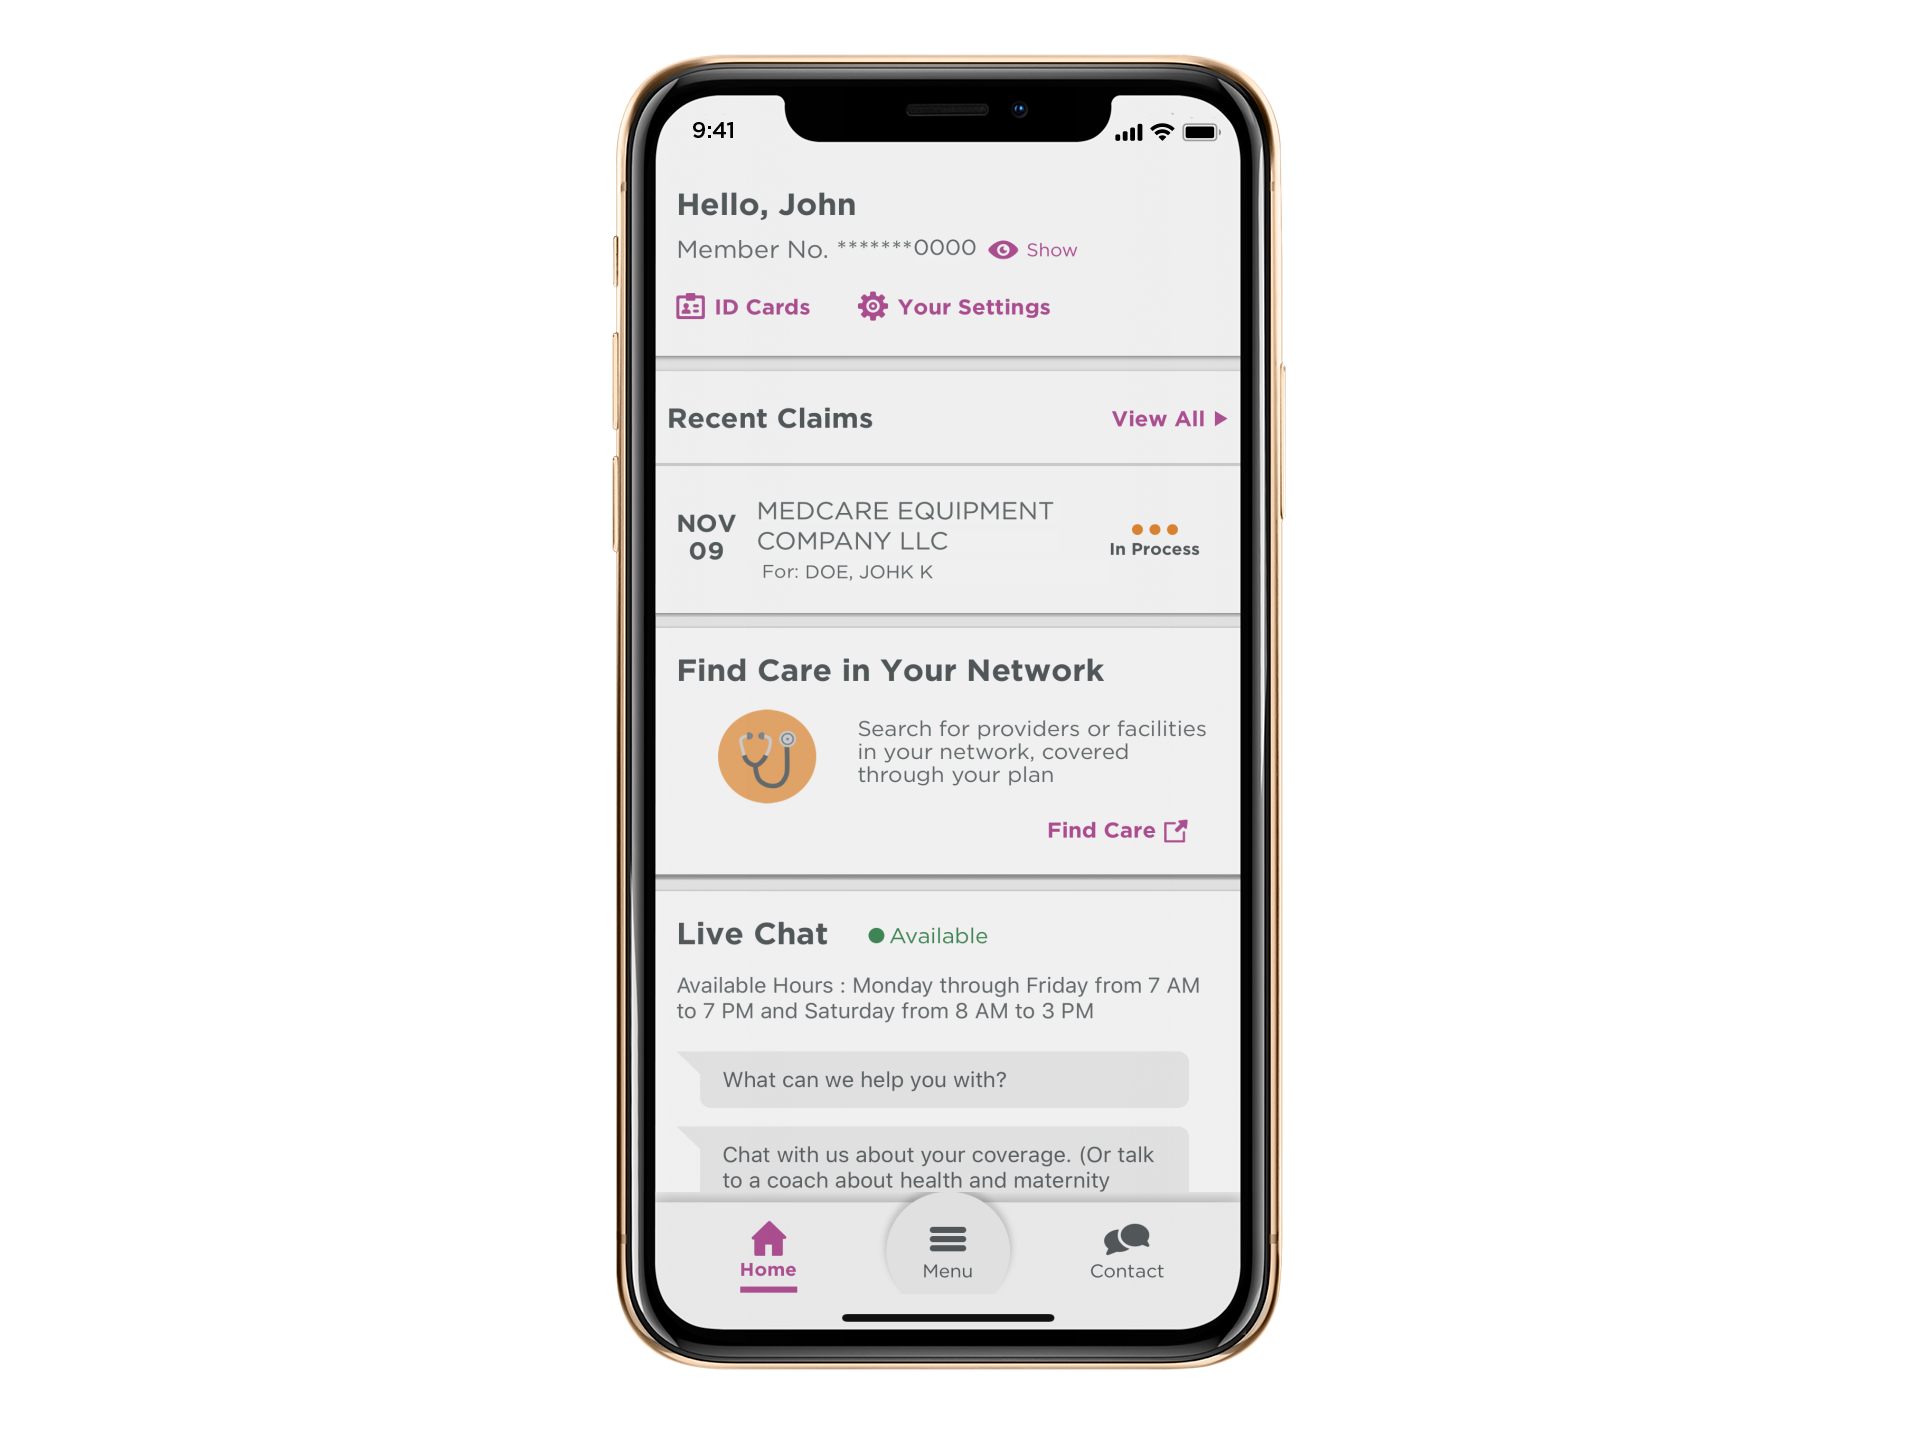 UPMC Health Plan Mobile App | UPMC Health Plan